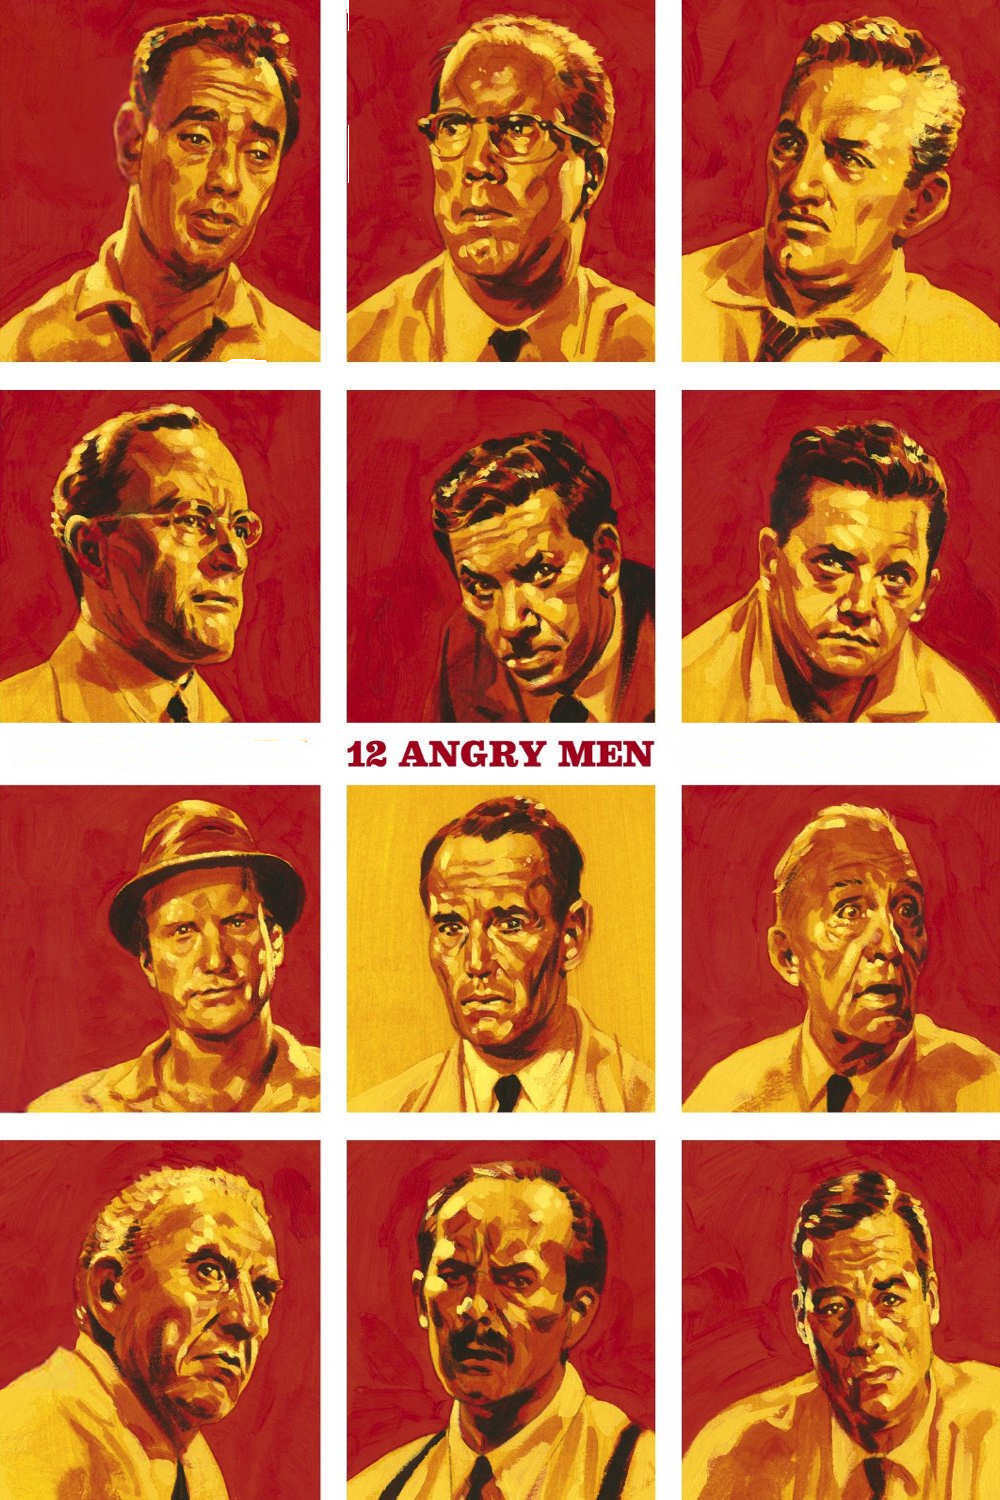 essay writing tips to angry men paper 12 angry men paper 12 angry men directed by sidney lumet